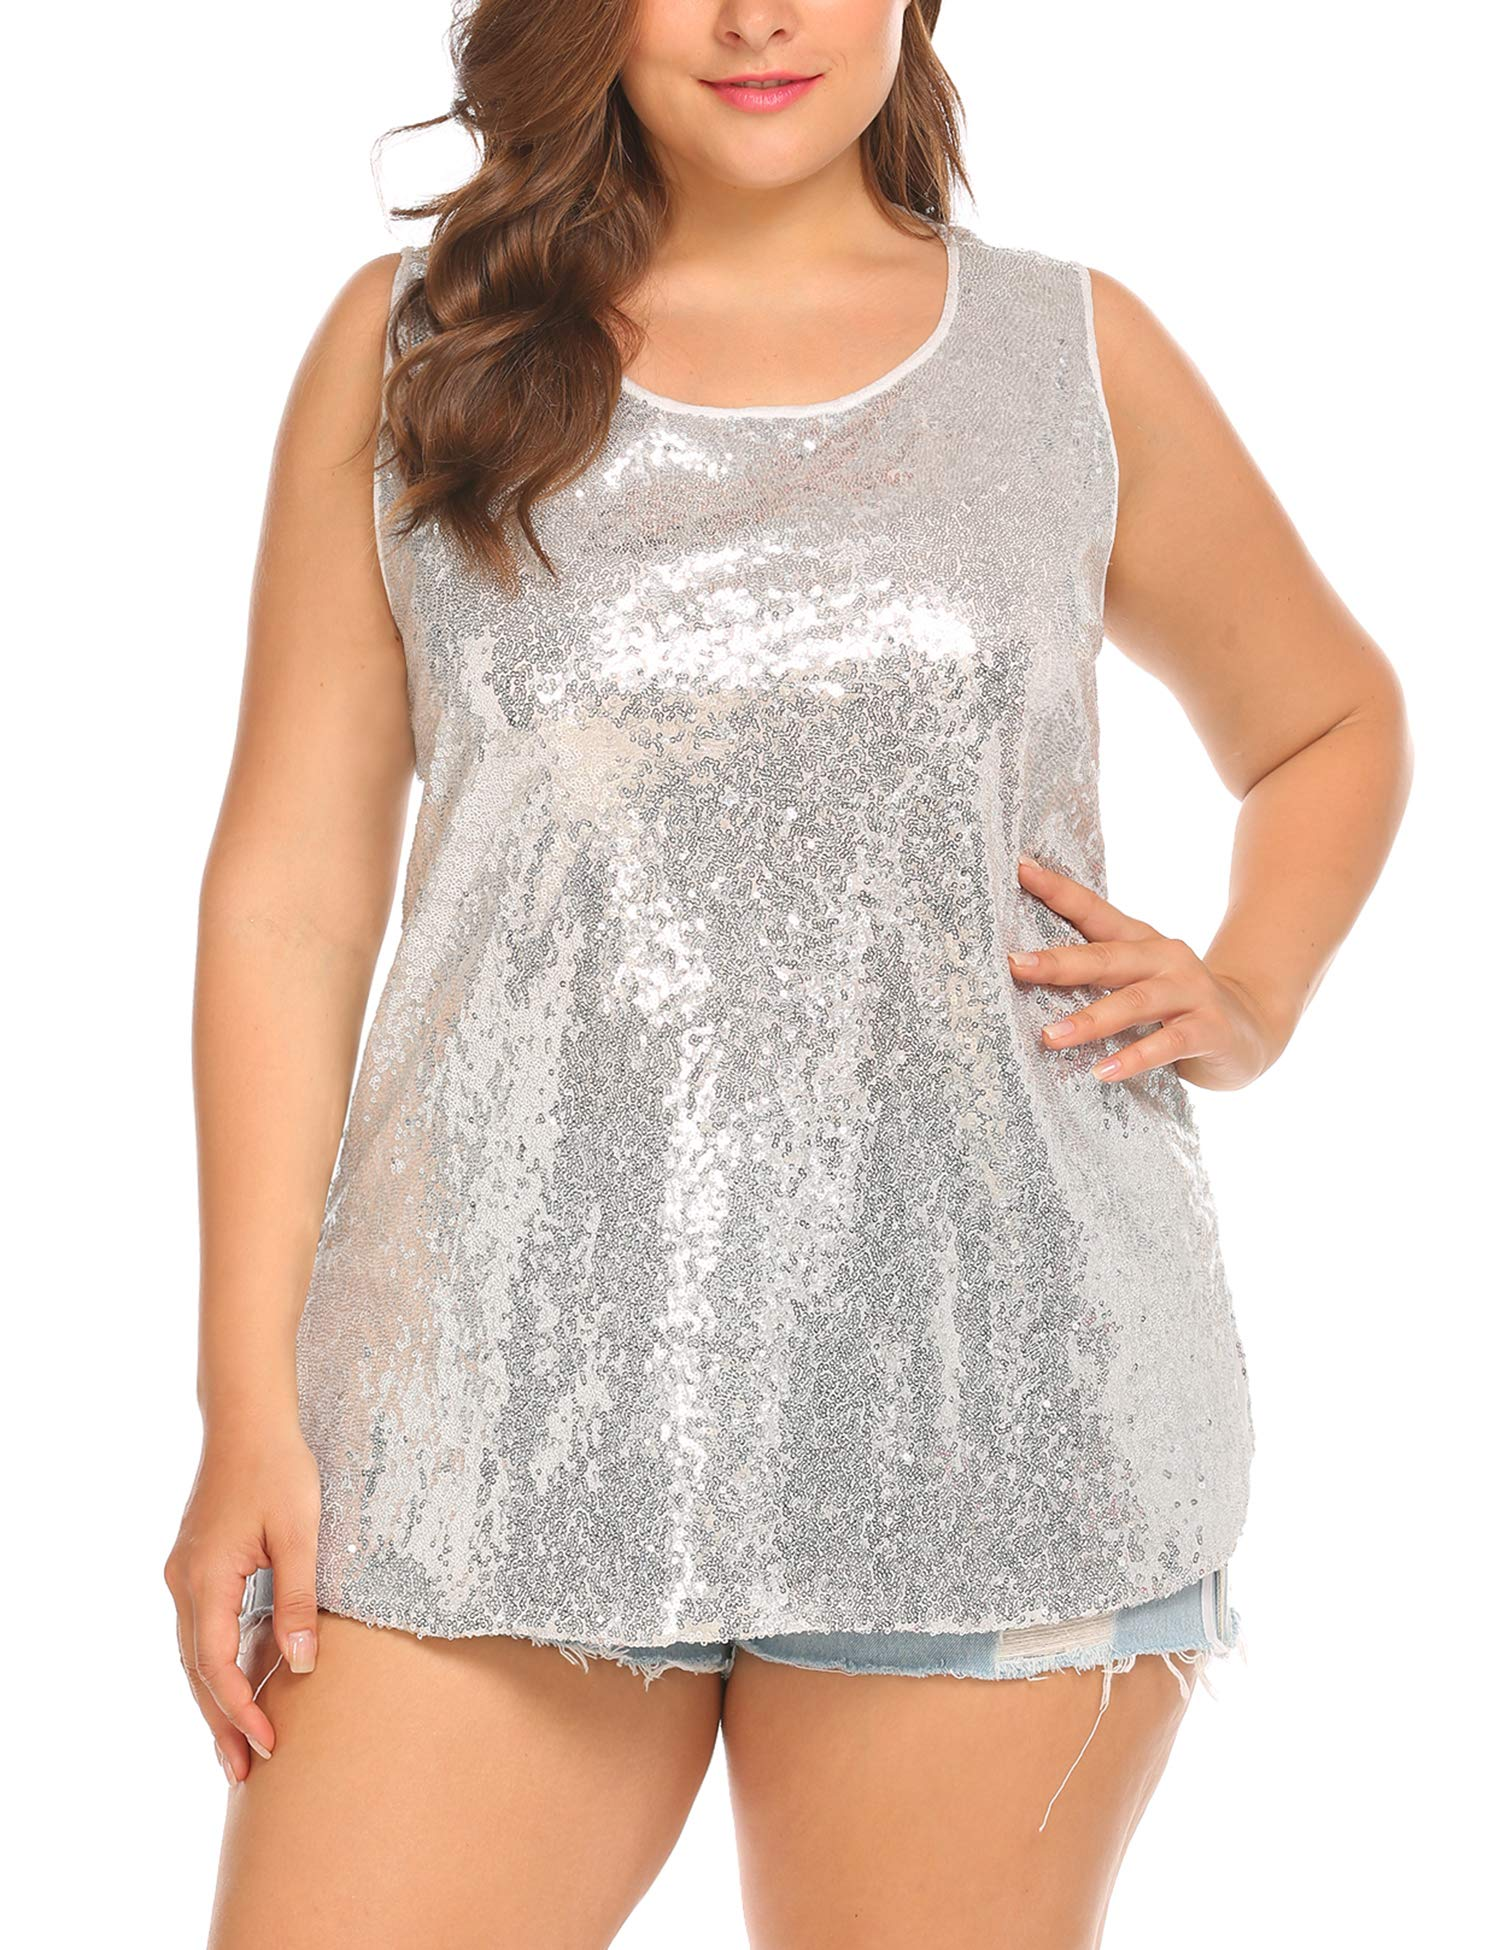 ac2db1ef059462 Galleon - IN'VOLAND Womens Sequin Top Plus Size Tank Tops Sparkle Glitter  Party Summer Sleeveless T Shirts Tunics Silver